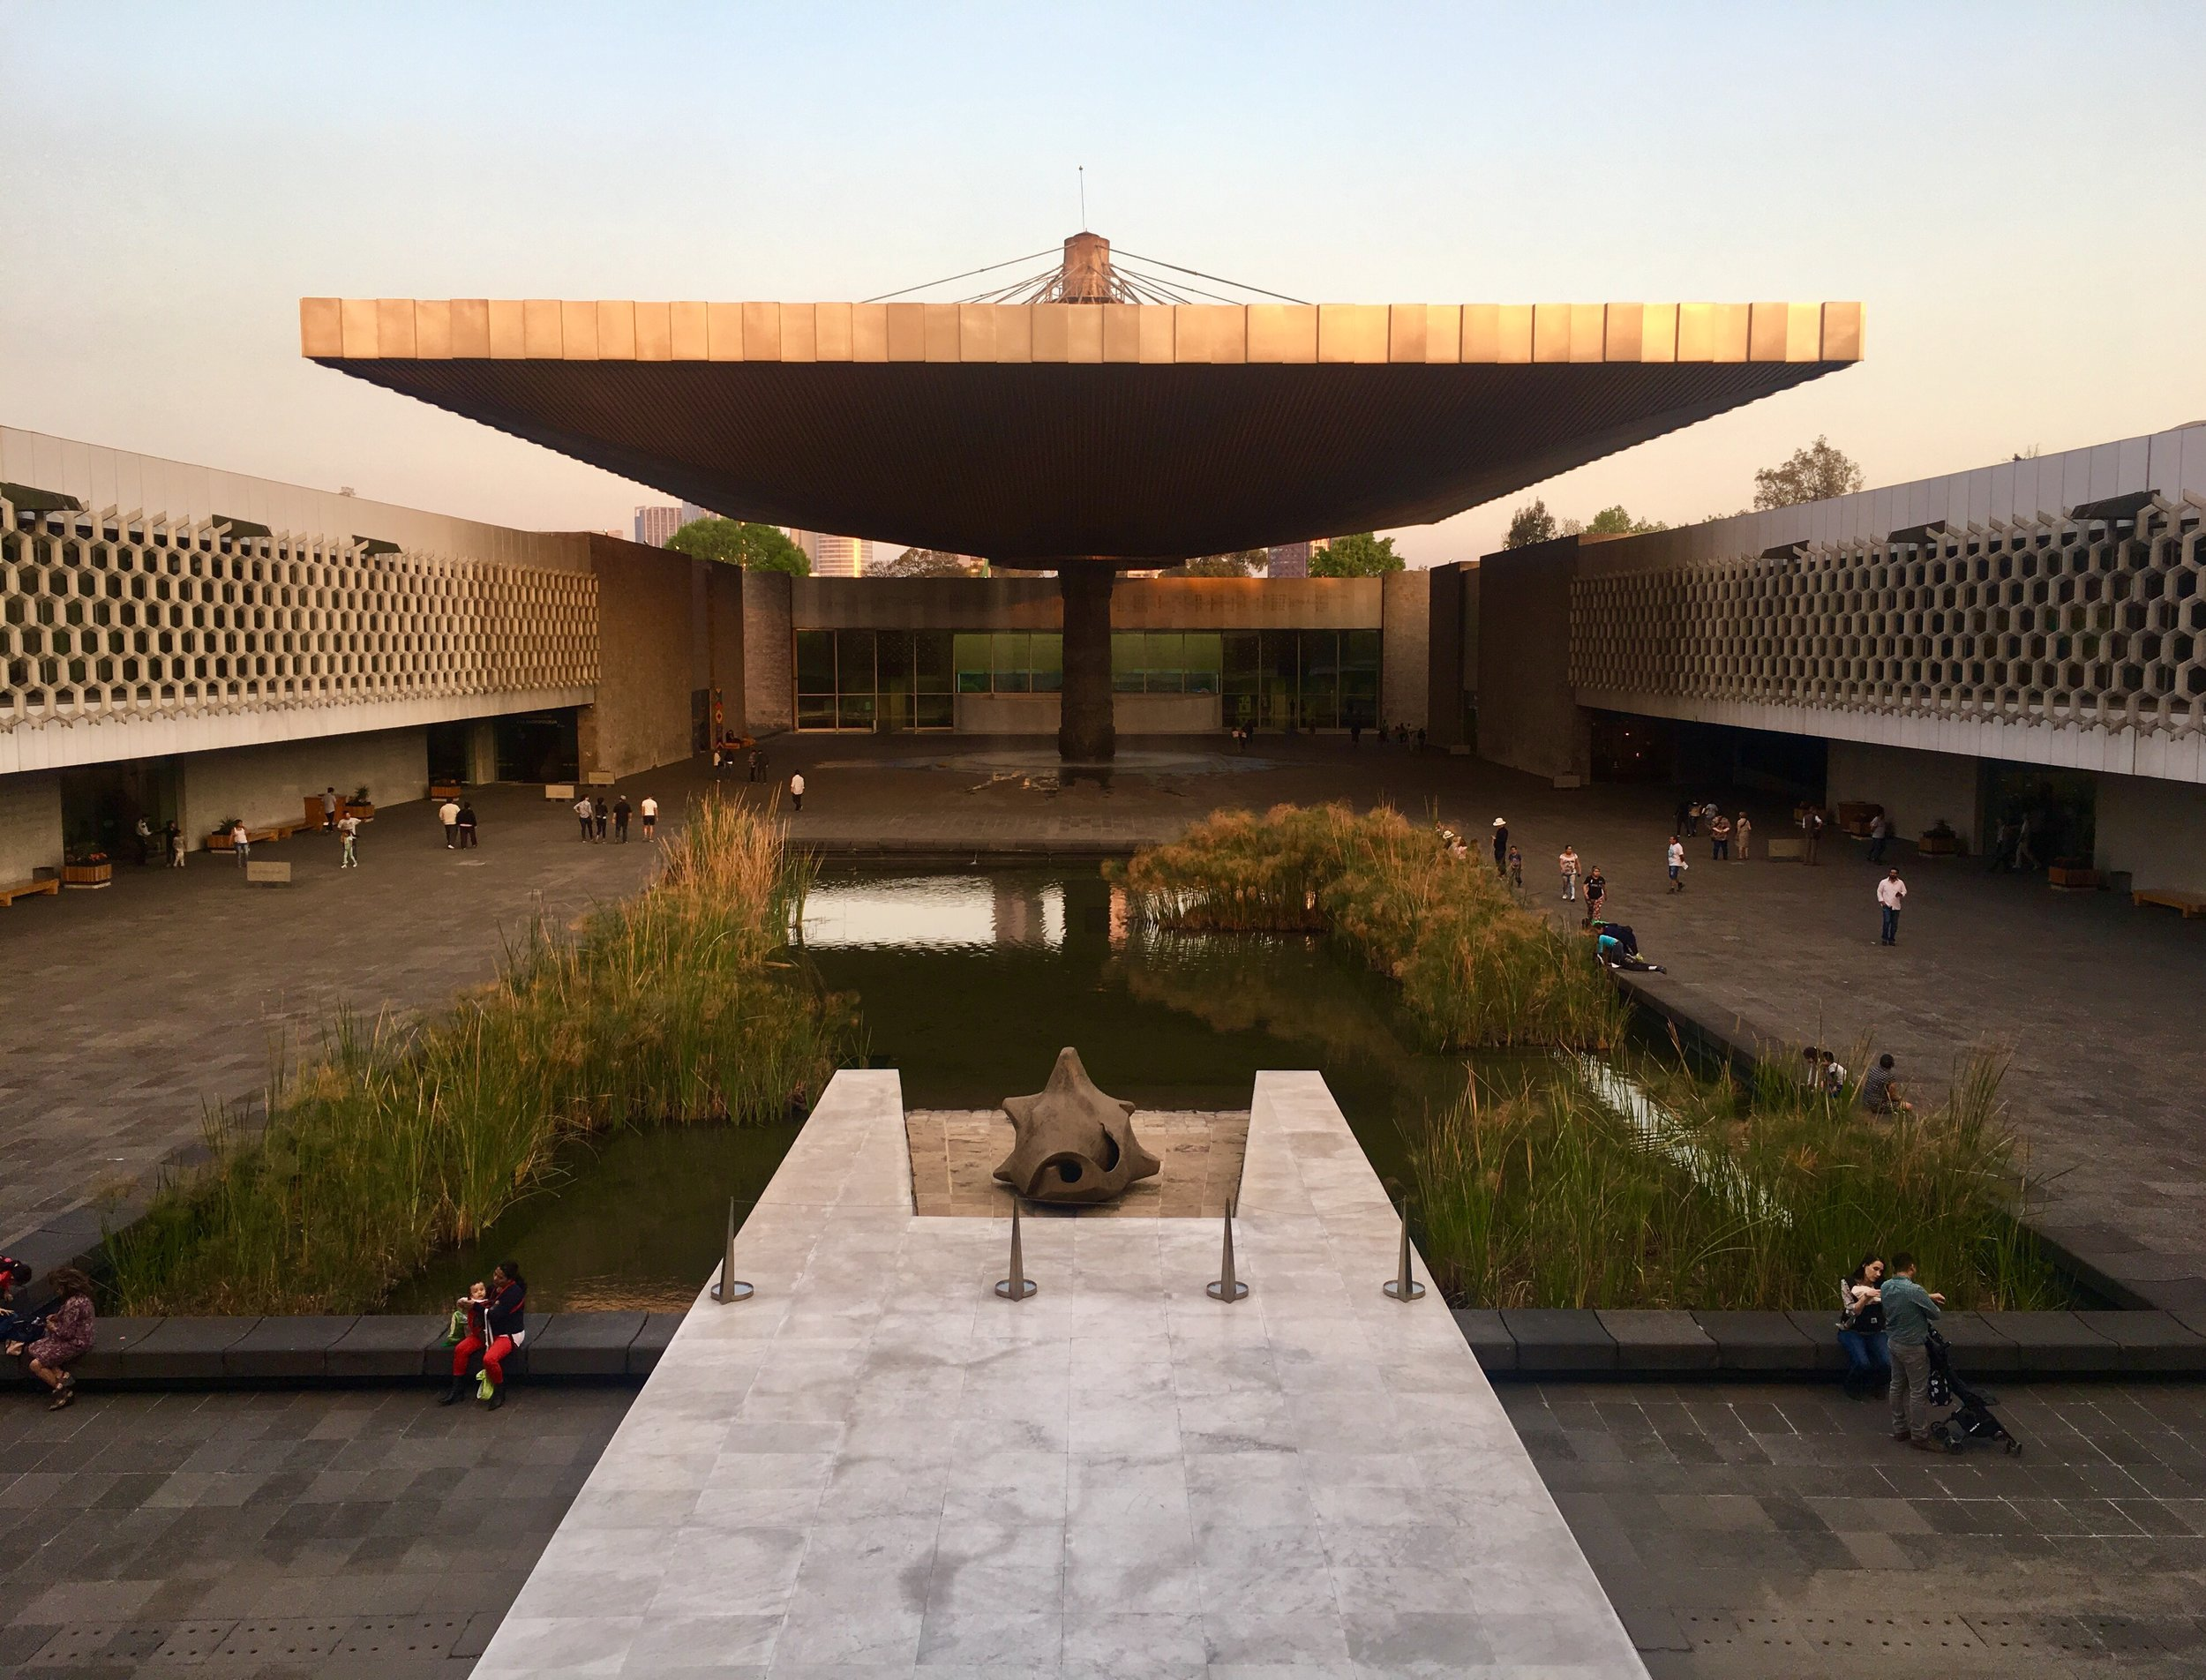 The National Museum of Anthropology in Mexico City